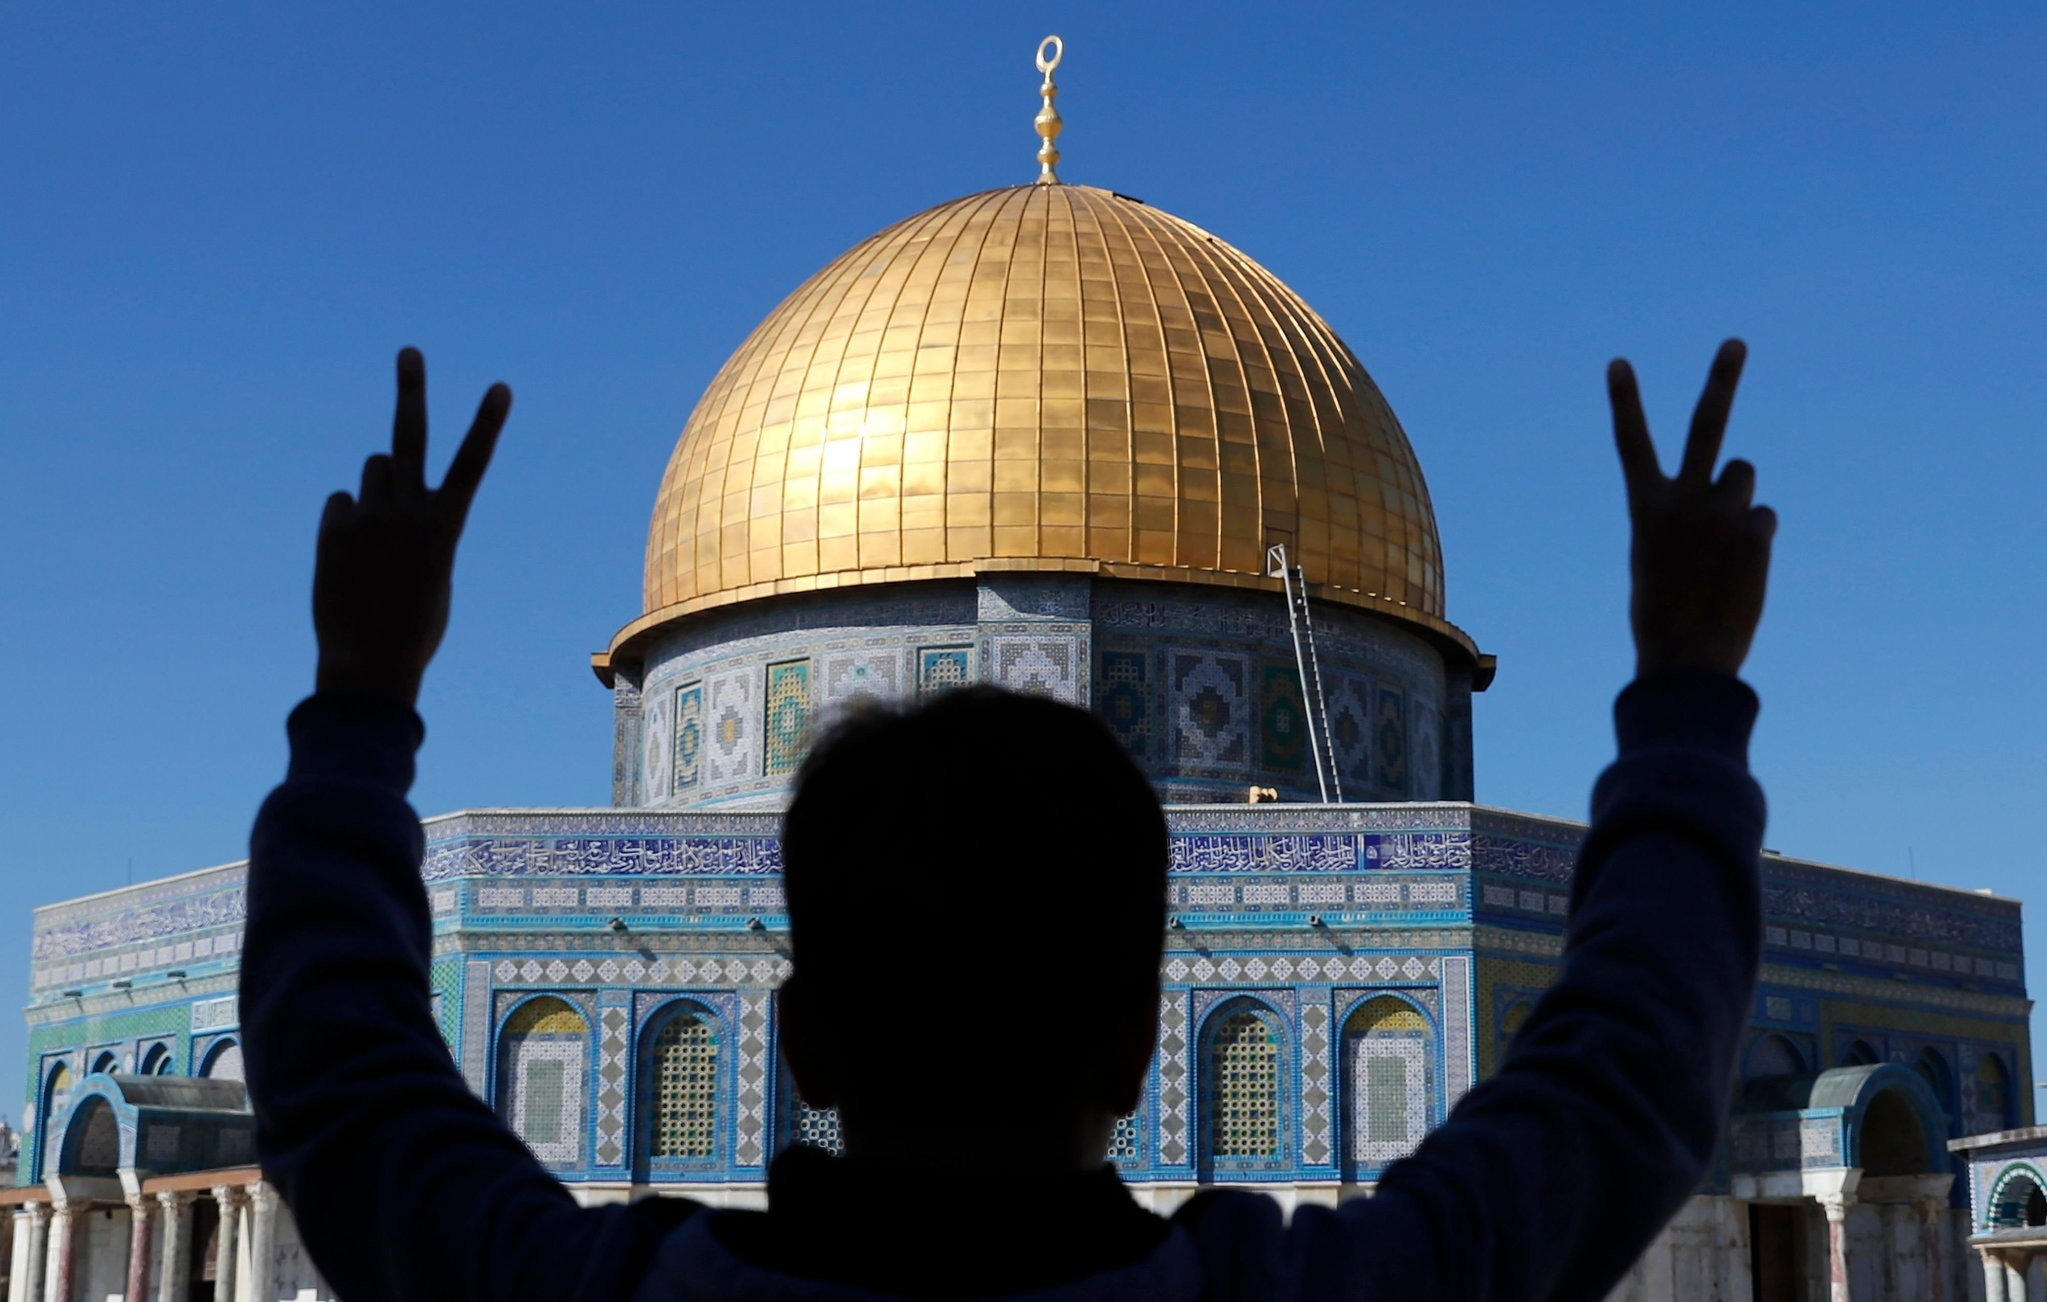 A Palestinian flashes the 'V 'sign during Friday prayers in front of the dome of the al-Aqsa Mosque compound in Jerusalem's old city on Dec. 8, 2017. (AFP Photo)